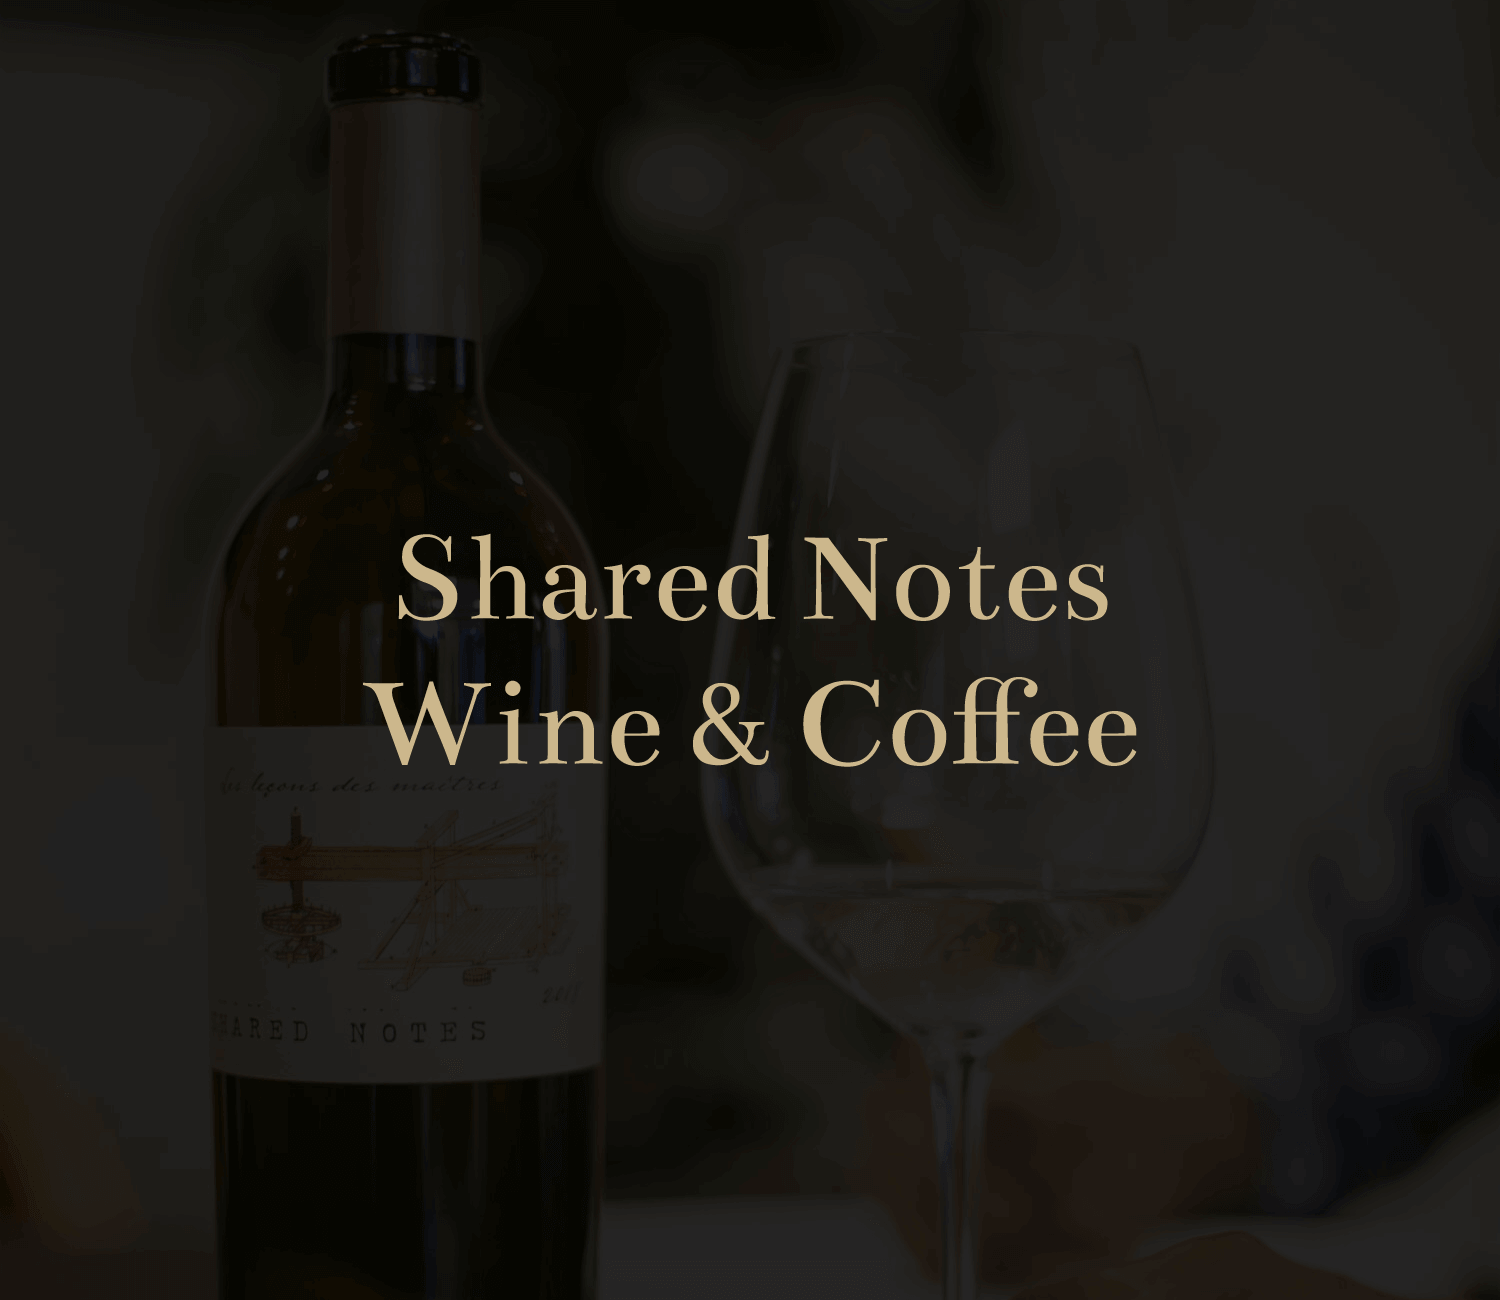 Purchase Shared Notes Wines & Coffee